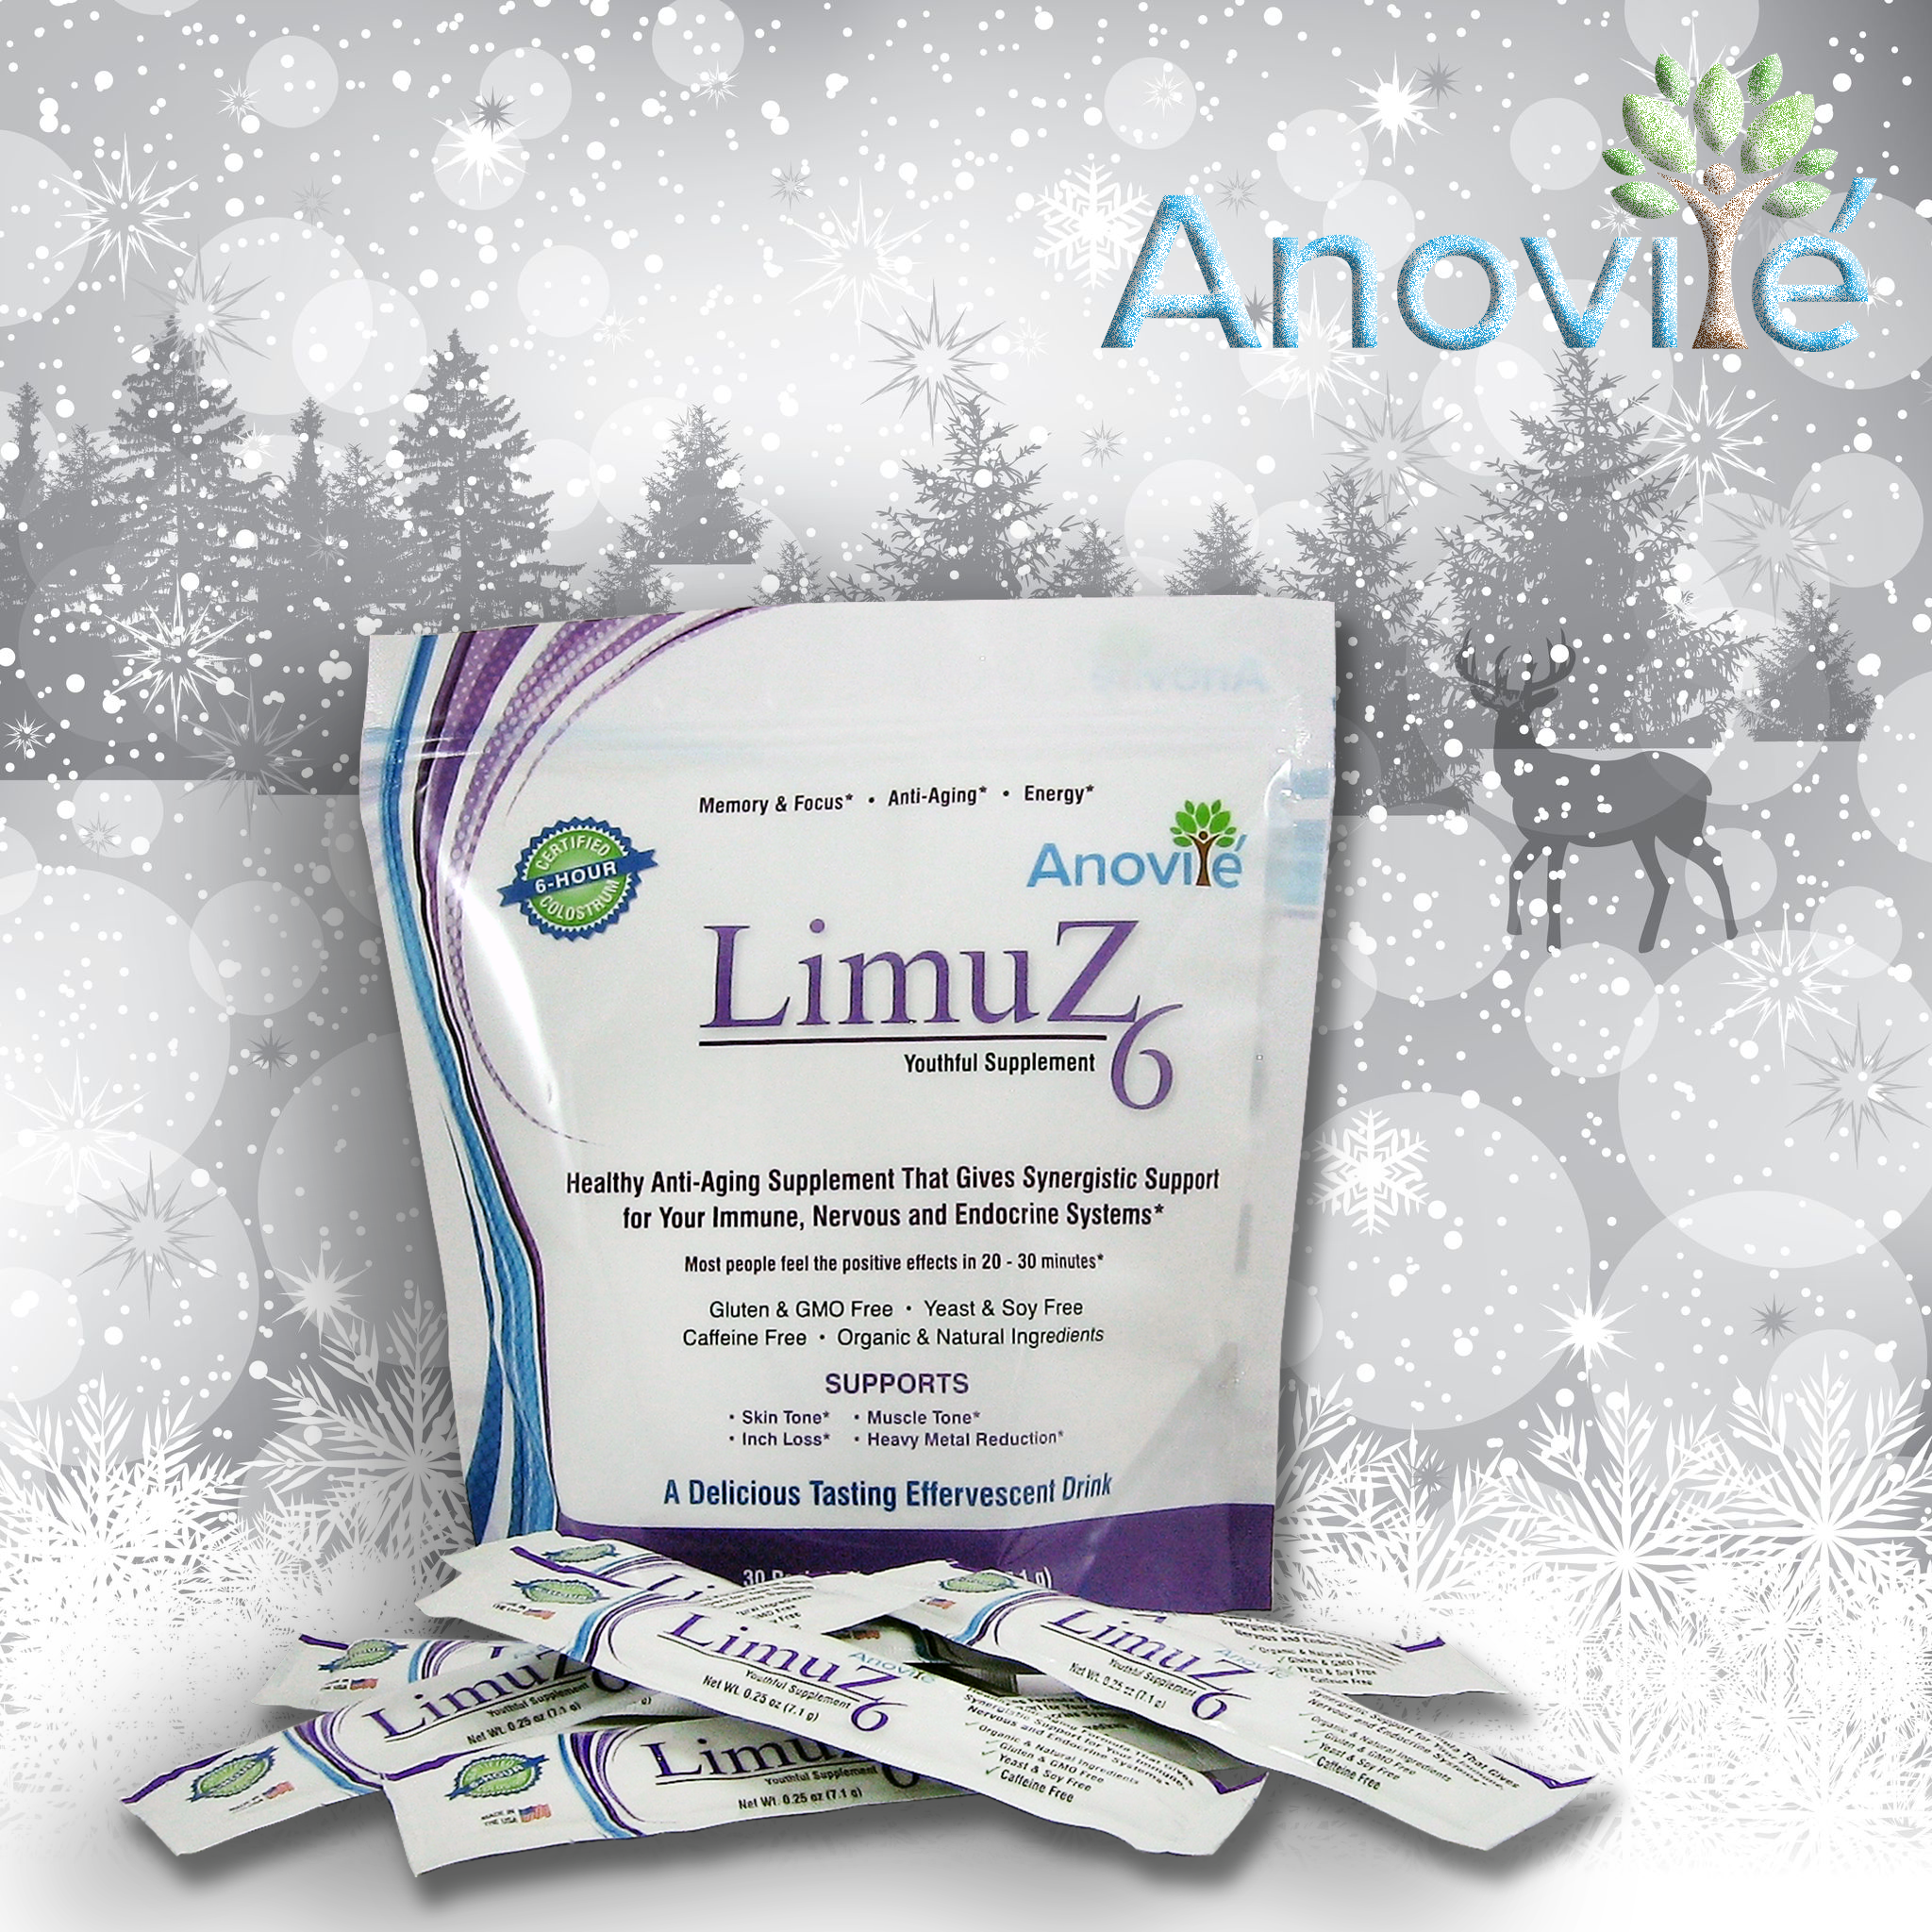 LimuZ is the first nutritional product which focuses on (4) four major systems of the body; Endocrine, Nervous, Immune and Pineal.